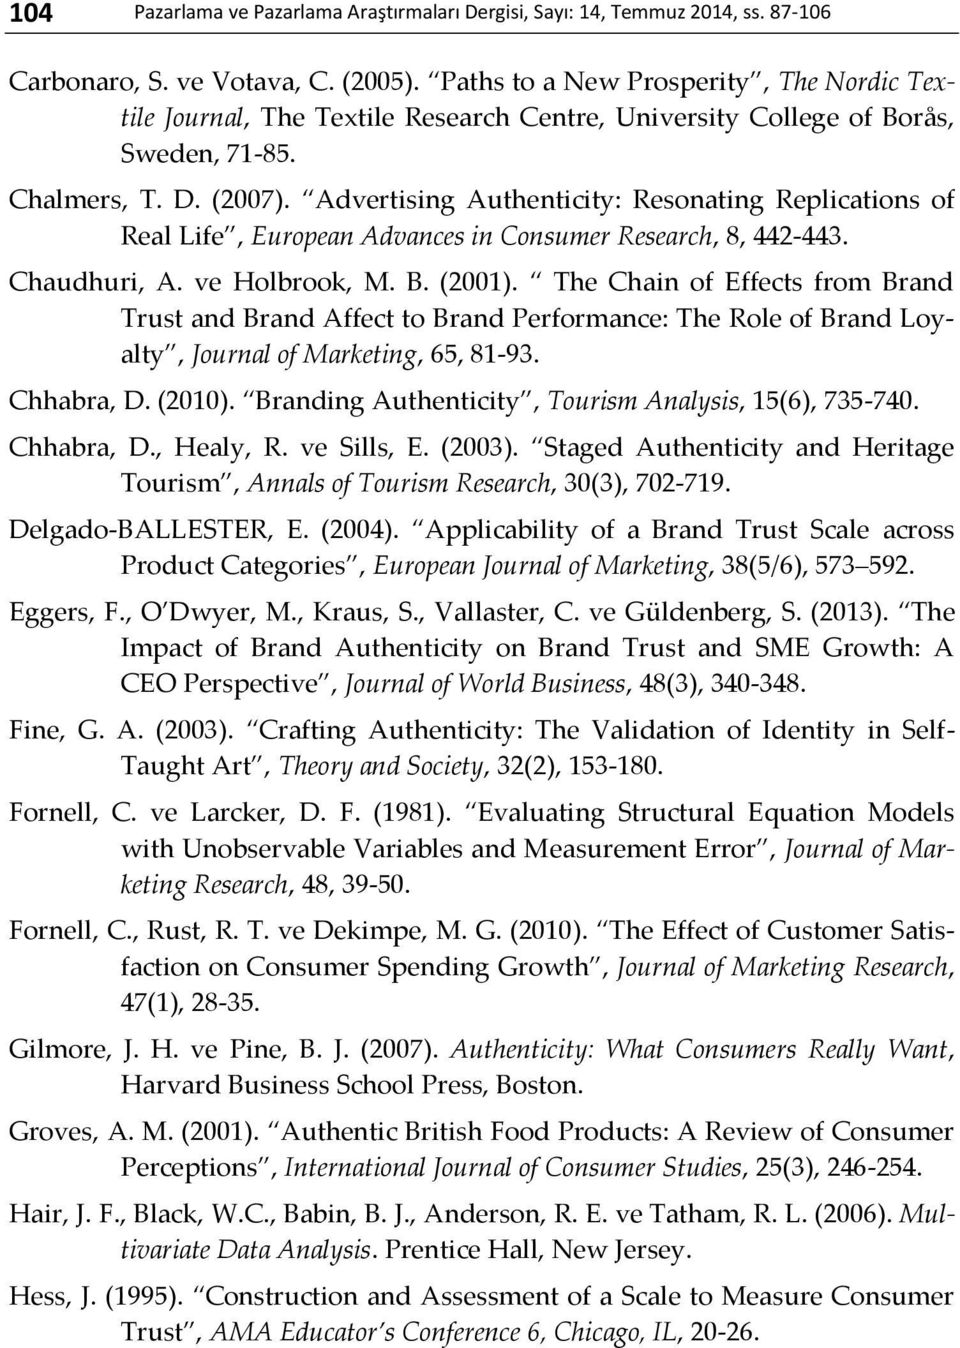 Advertising Authenticity: Resonating Replications of Real Life, European Advances in Consumer Research, 8, 442-443. Chaudhuri, A. ve Holbrook, M. B. (2001).